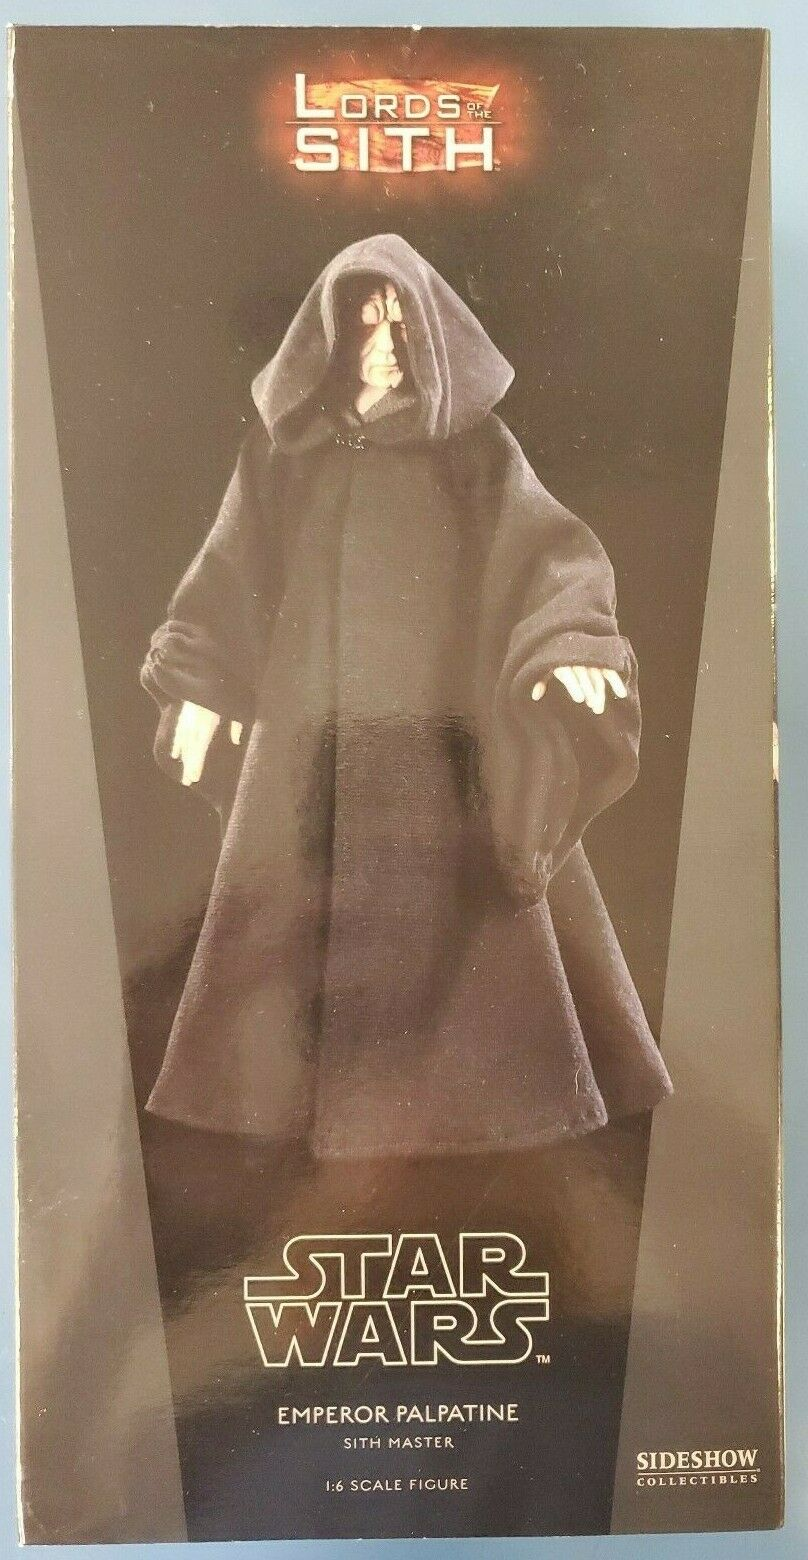 Sideshow Collectibles Star Wars Lords Of The Sith Emperor Palpatine 1 6 Scale